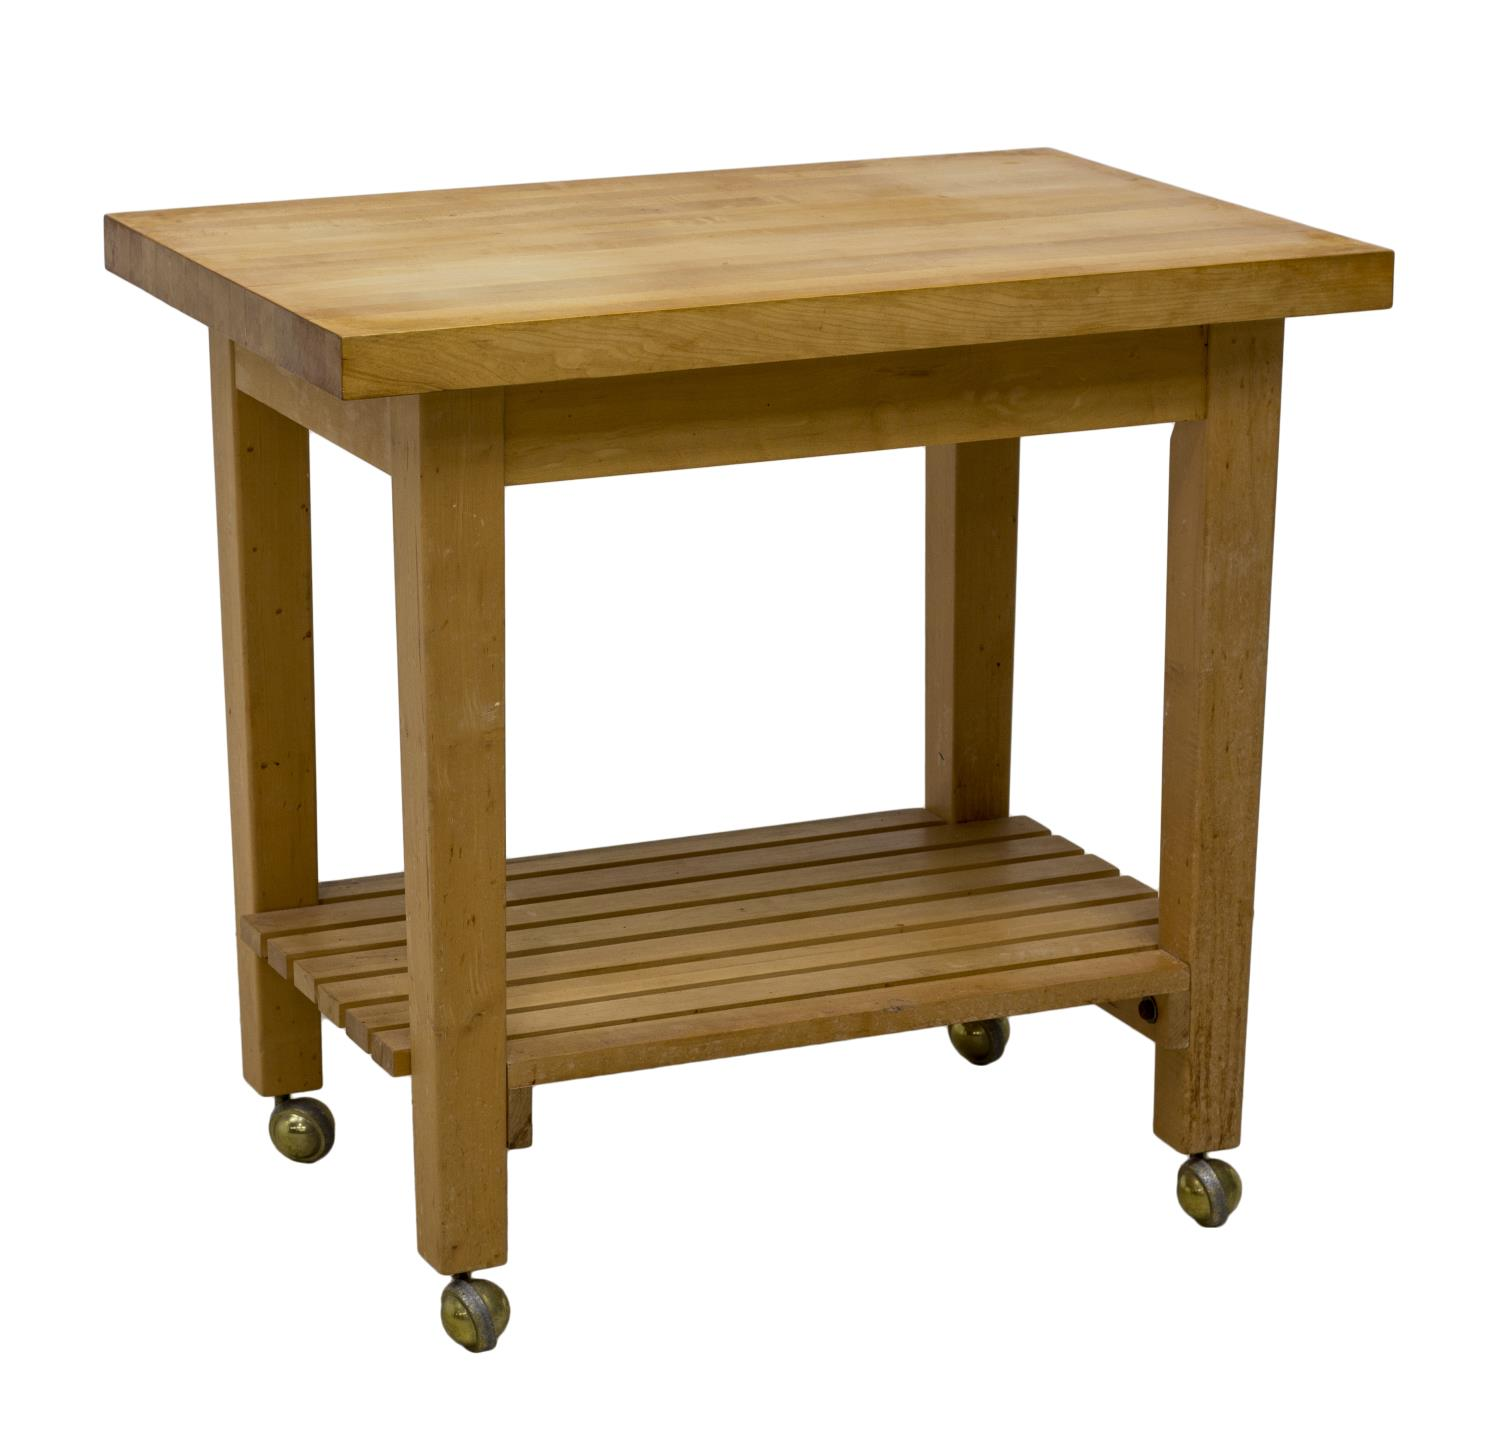 Kitchen Work Table Butcher Block : CONTEMPORARY BUTCHER BLOCK KITCHEN WORK TABLE - The Nassour Estate & More - Day One! - Austin ...